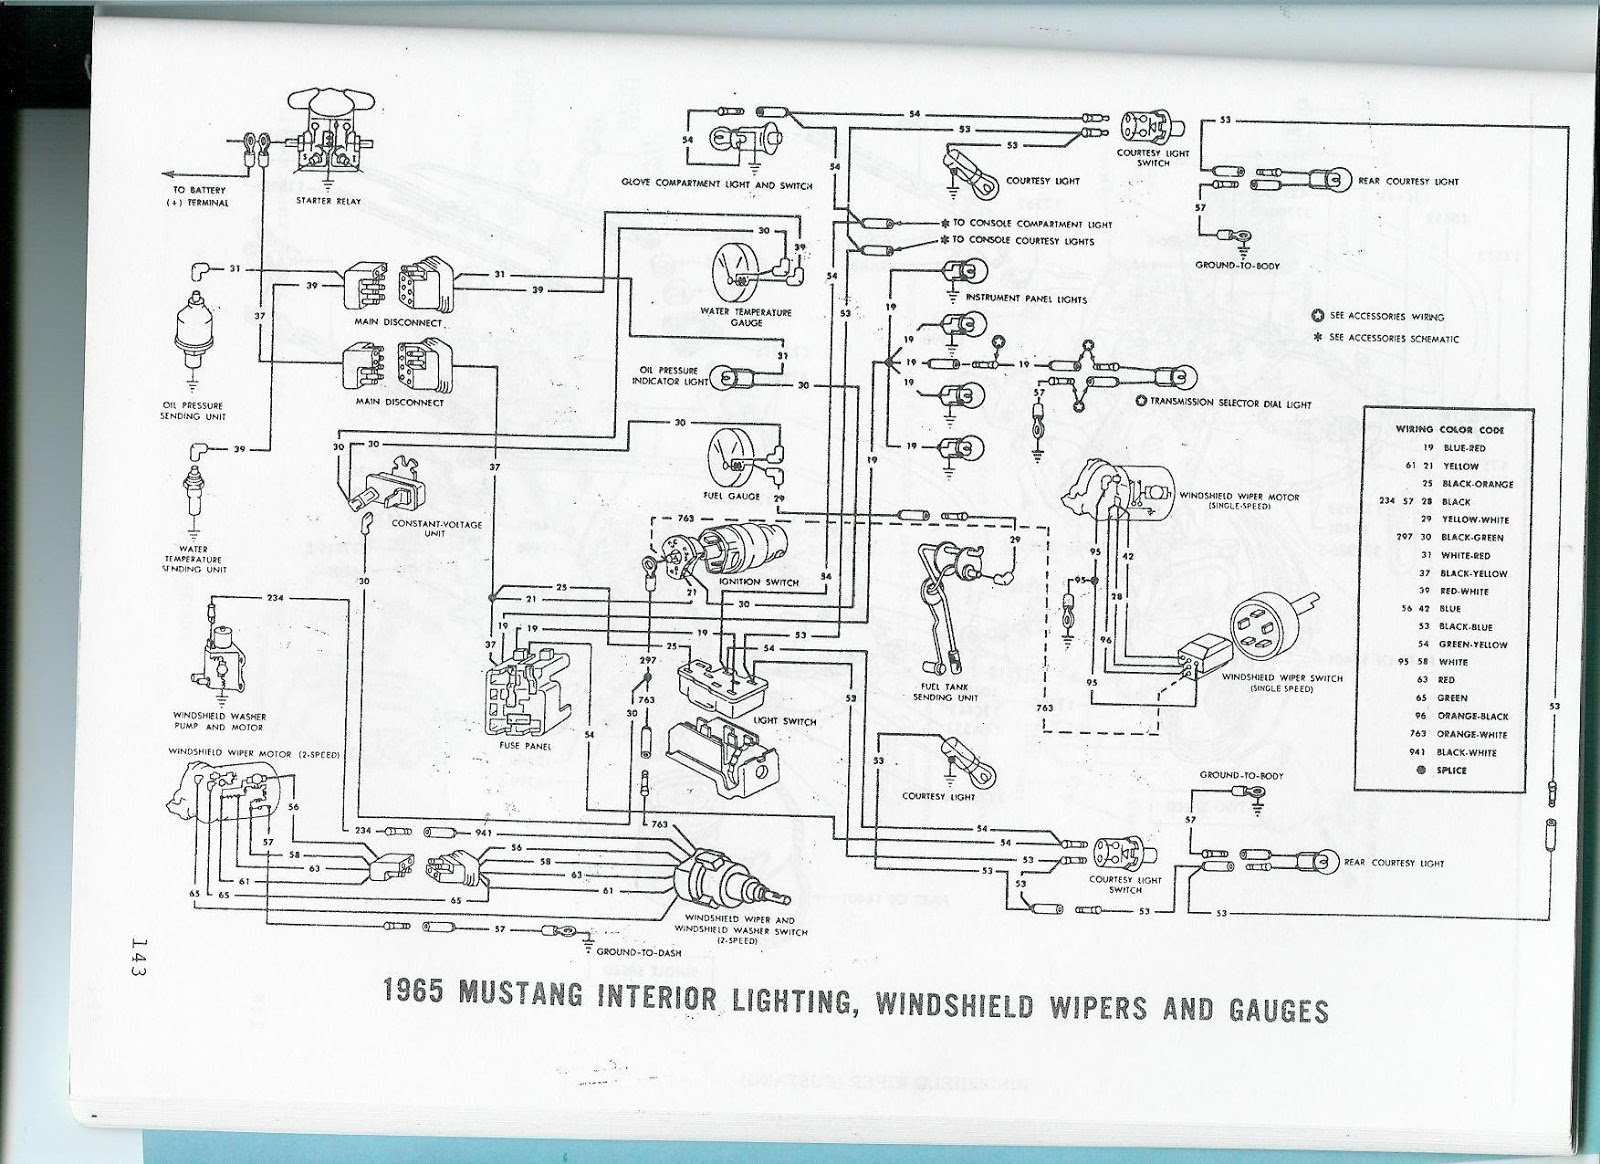 Wiring Diagram 1965 Mustang Accessories